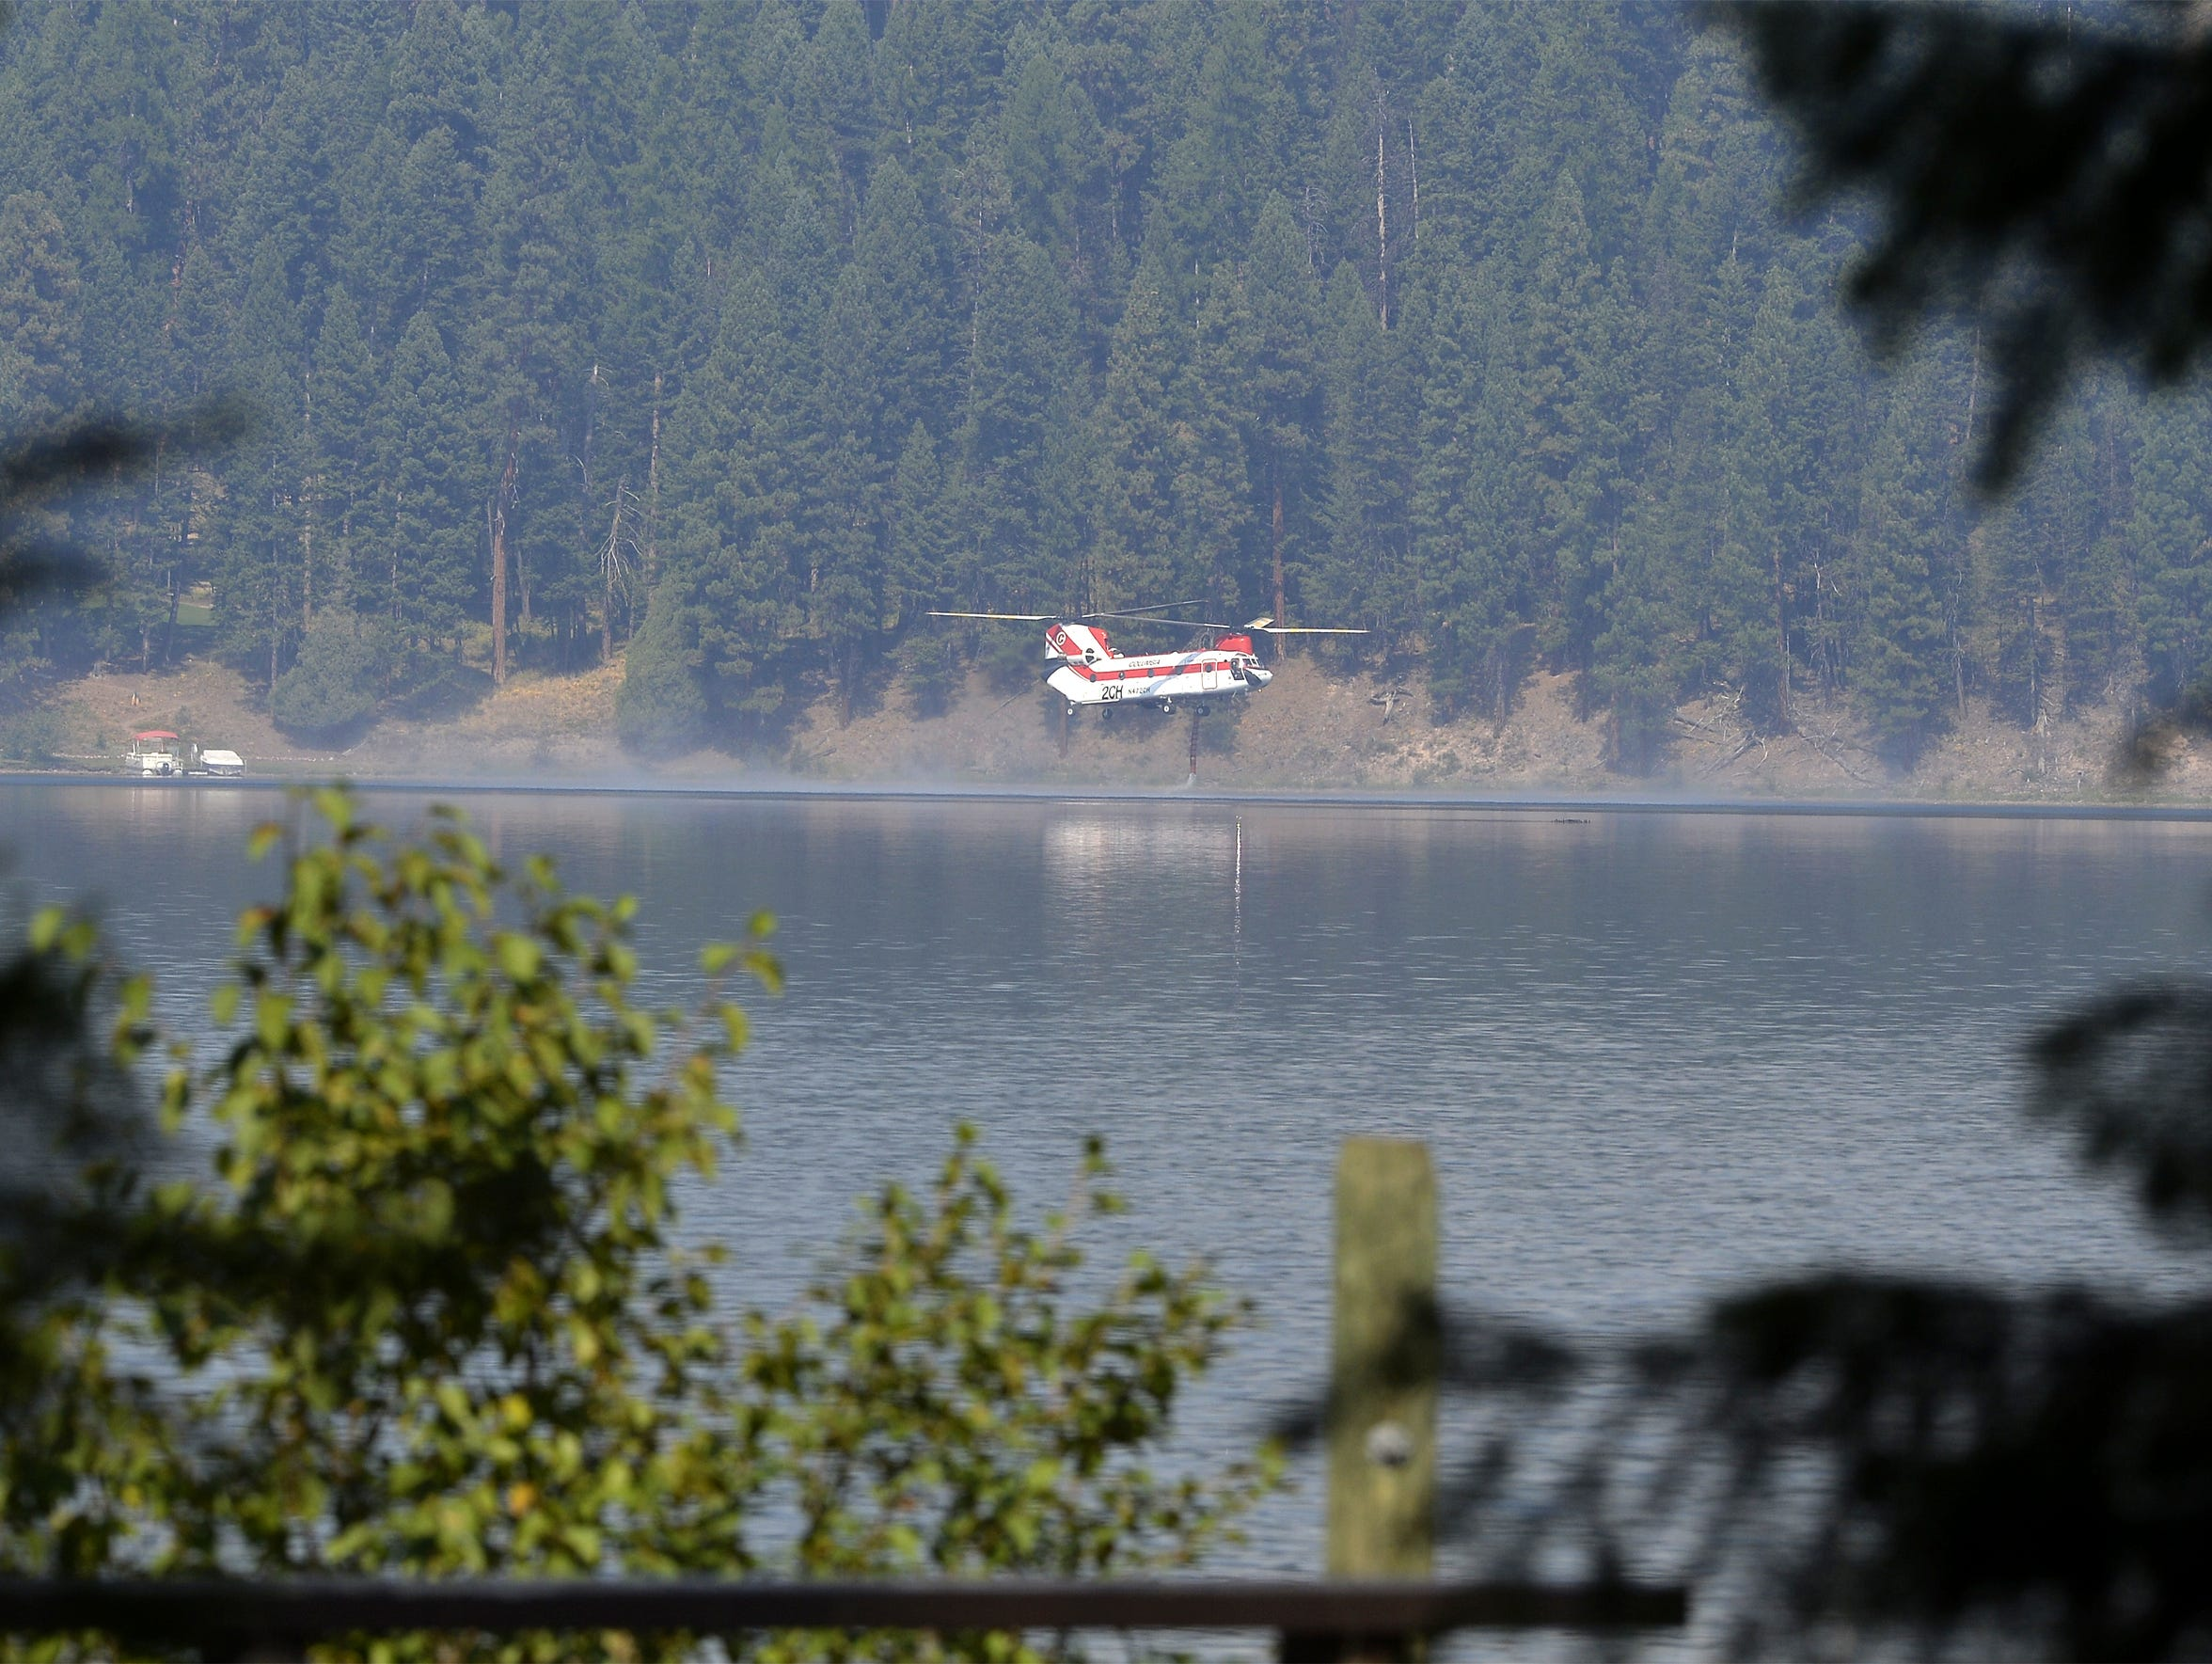 A Chinook helicopter fills up on water in Seeley Lake